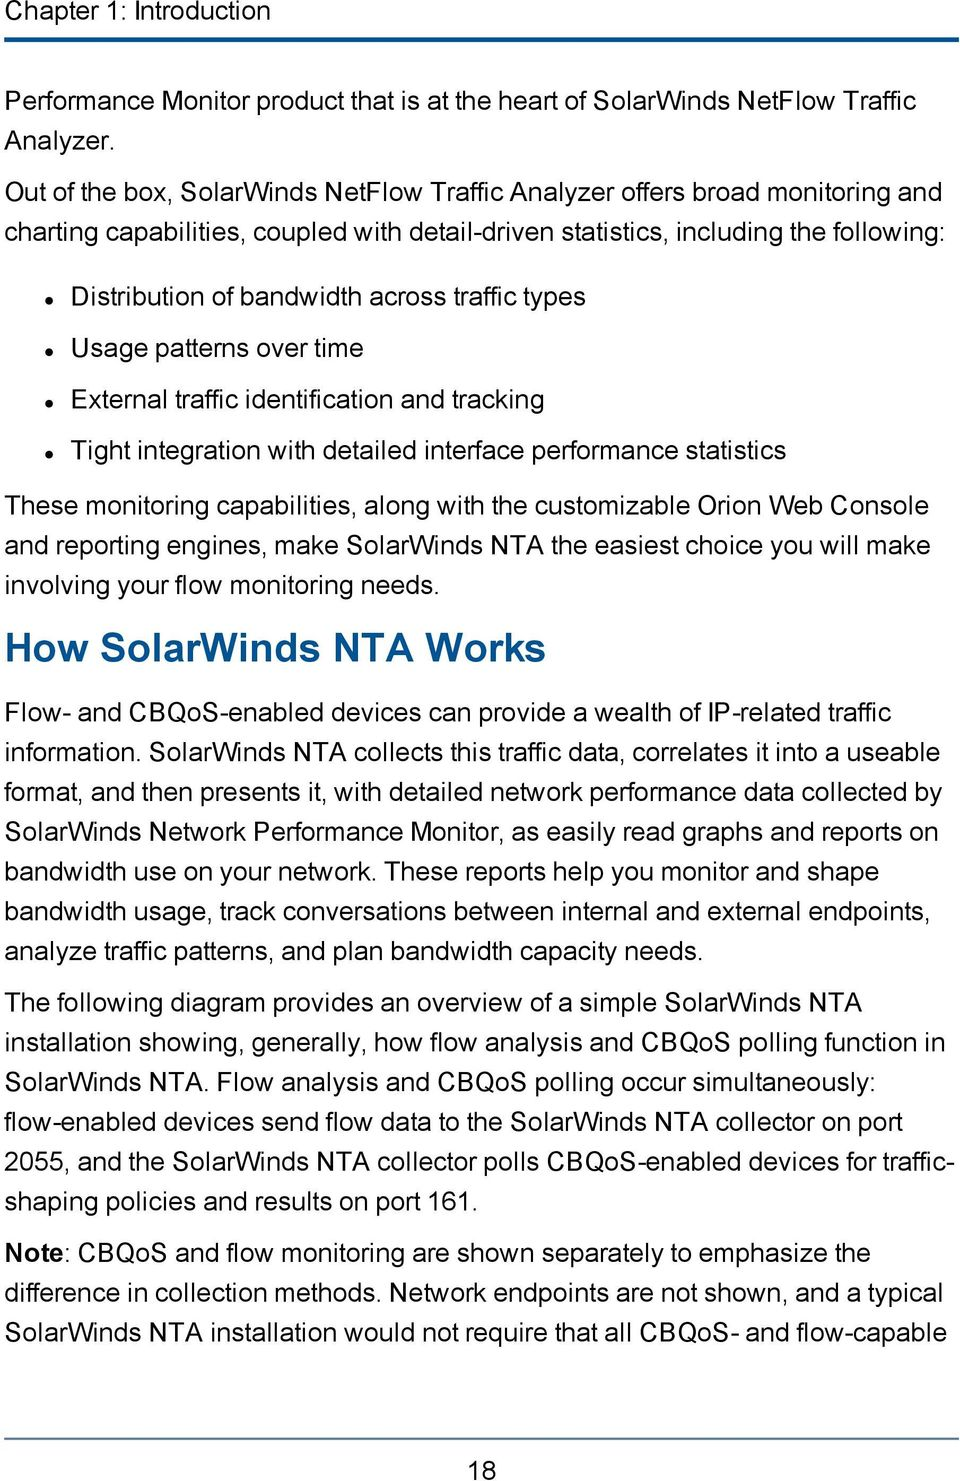 traffic types Usage patterns over time External traffic identification and tracking Tight integration with detailed interface performance statistics These monitoring capabilities, along with the